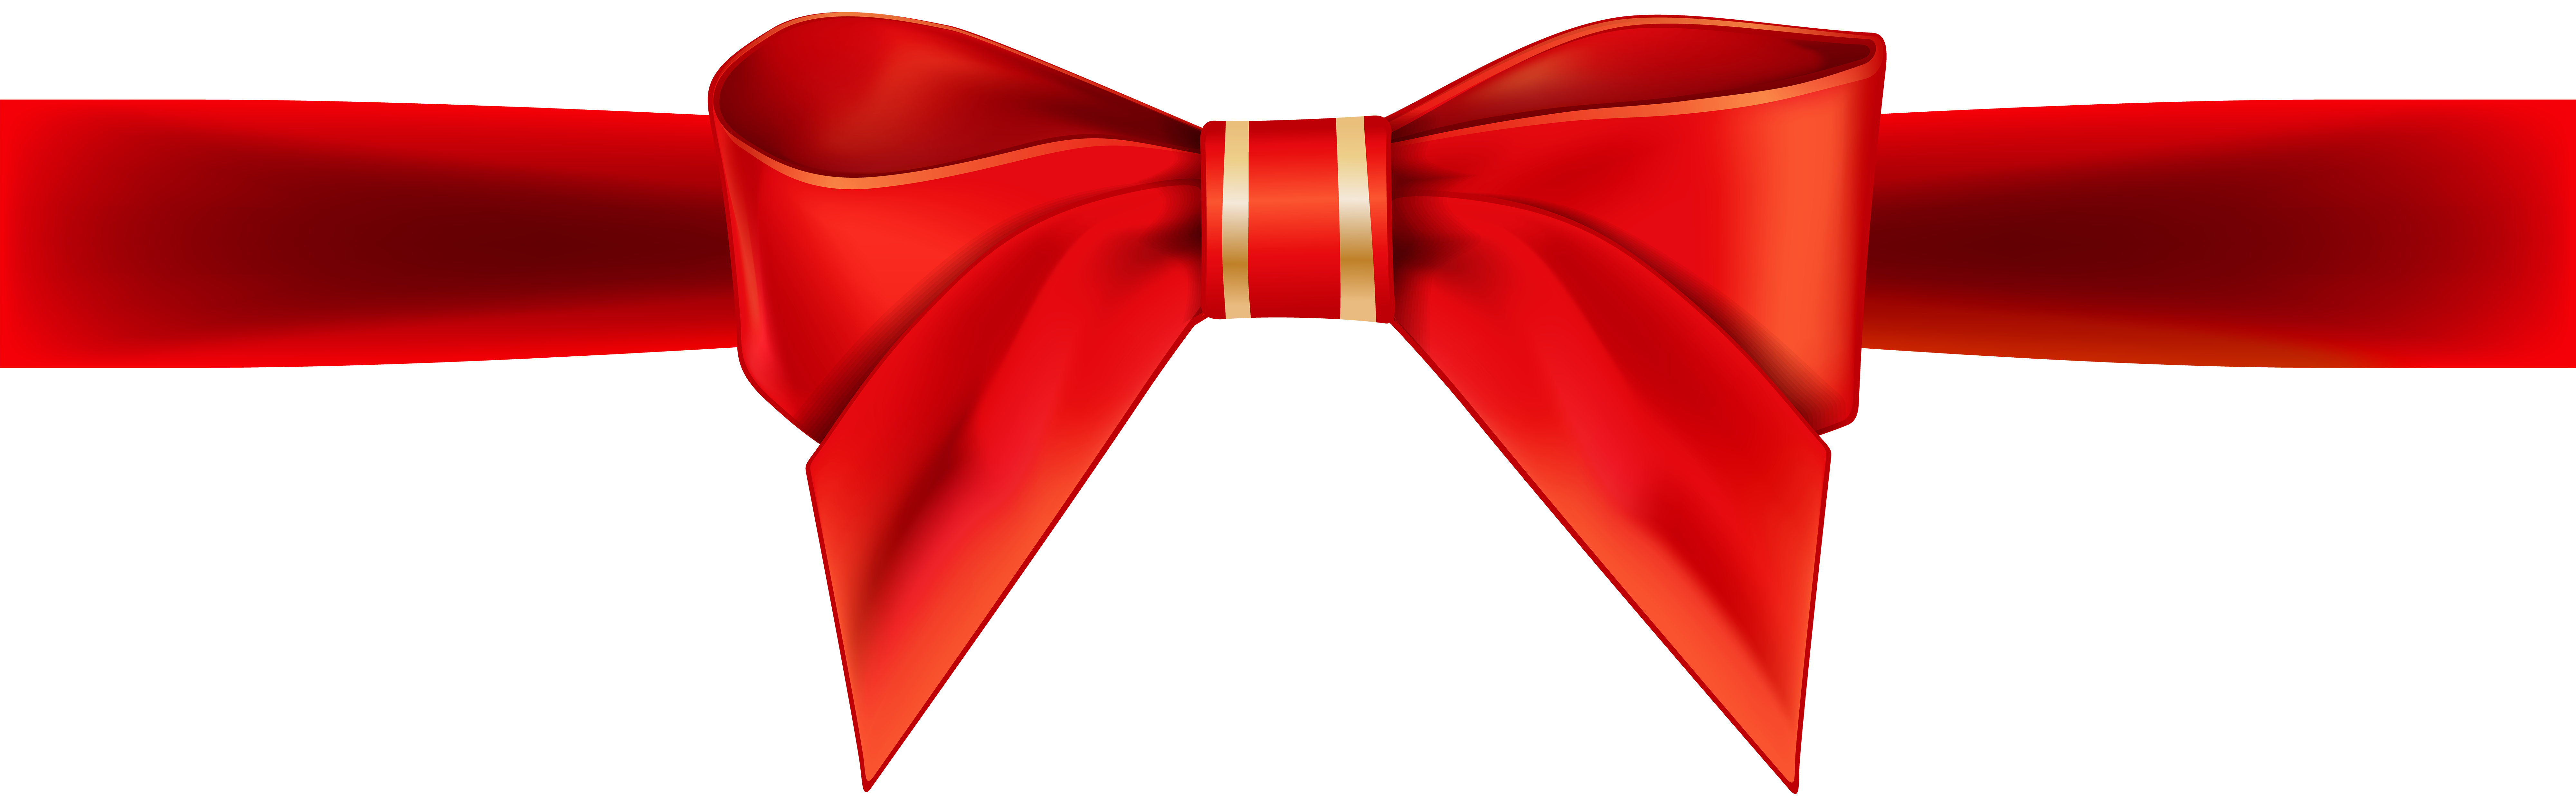 Red Ribbon Bow Transparent PNG Clip Art Image.